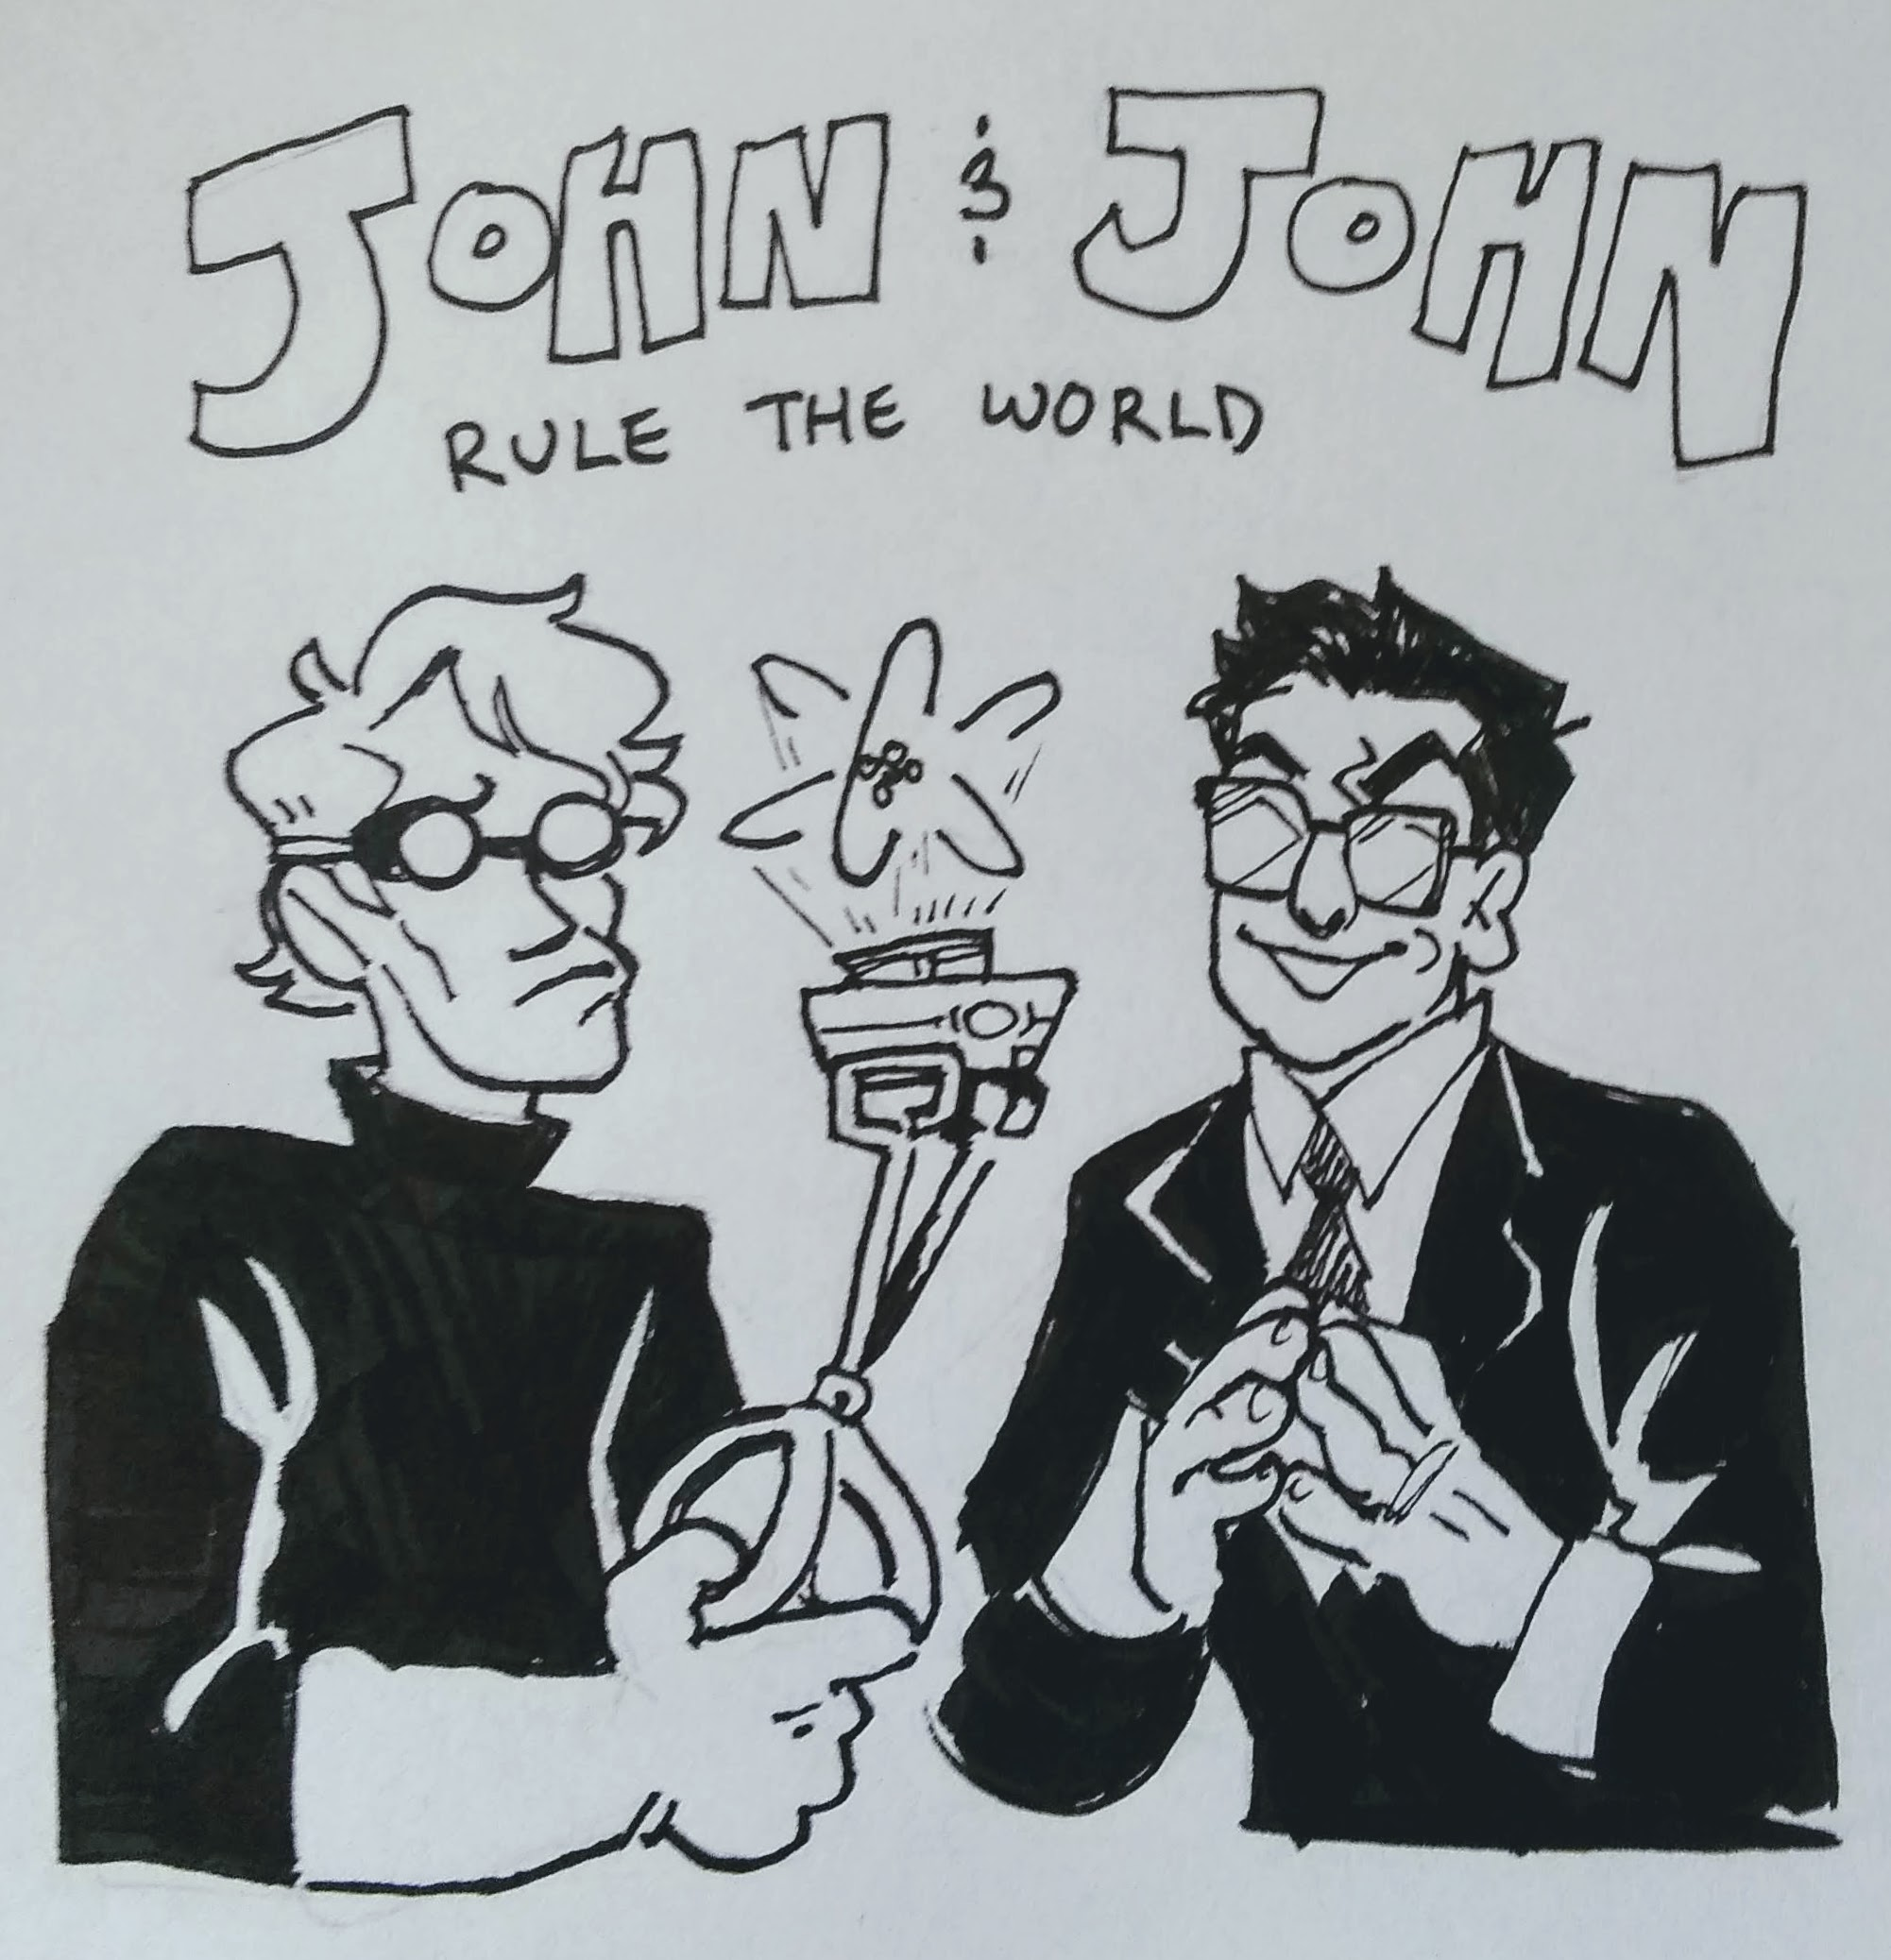 First concept drawing of <a href='xandy.html'>John and John Rule the World</a>.